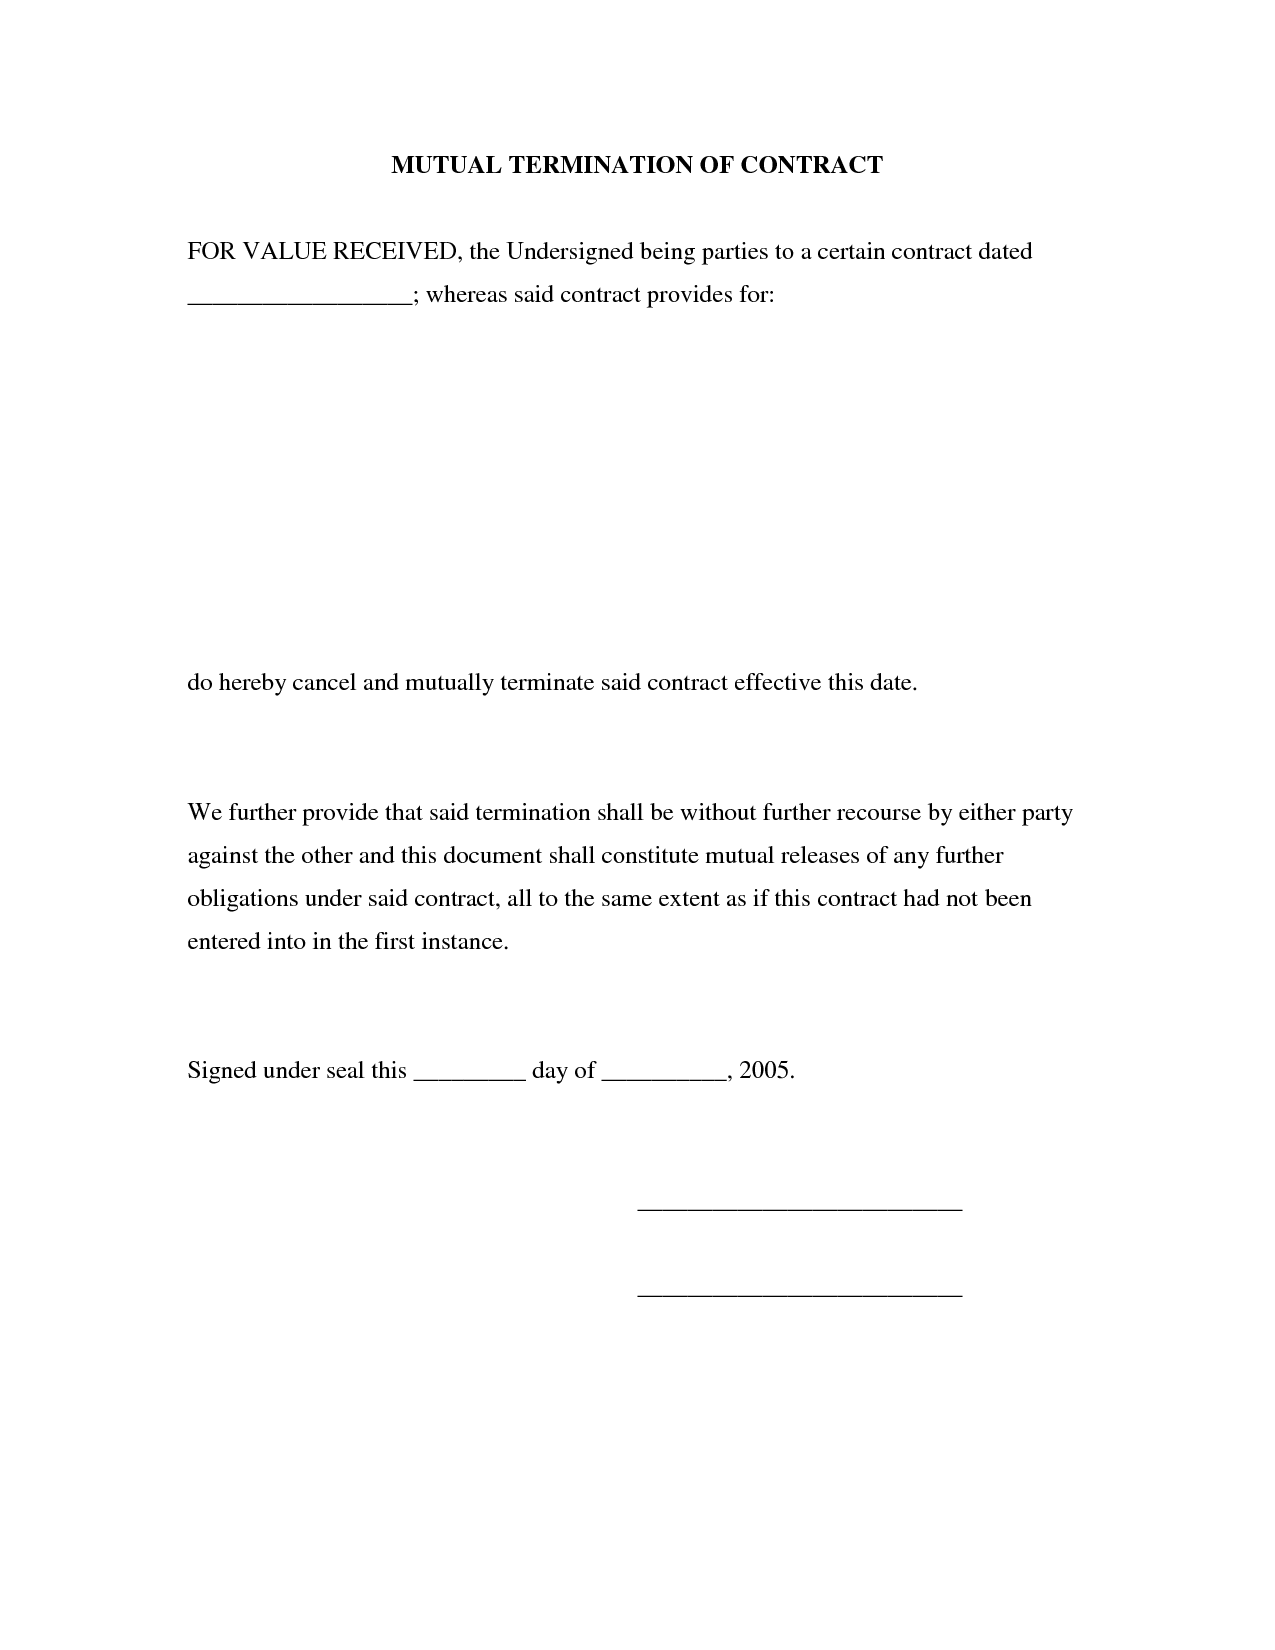 Business Termination Agreement Contract Letter Sample Mutual